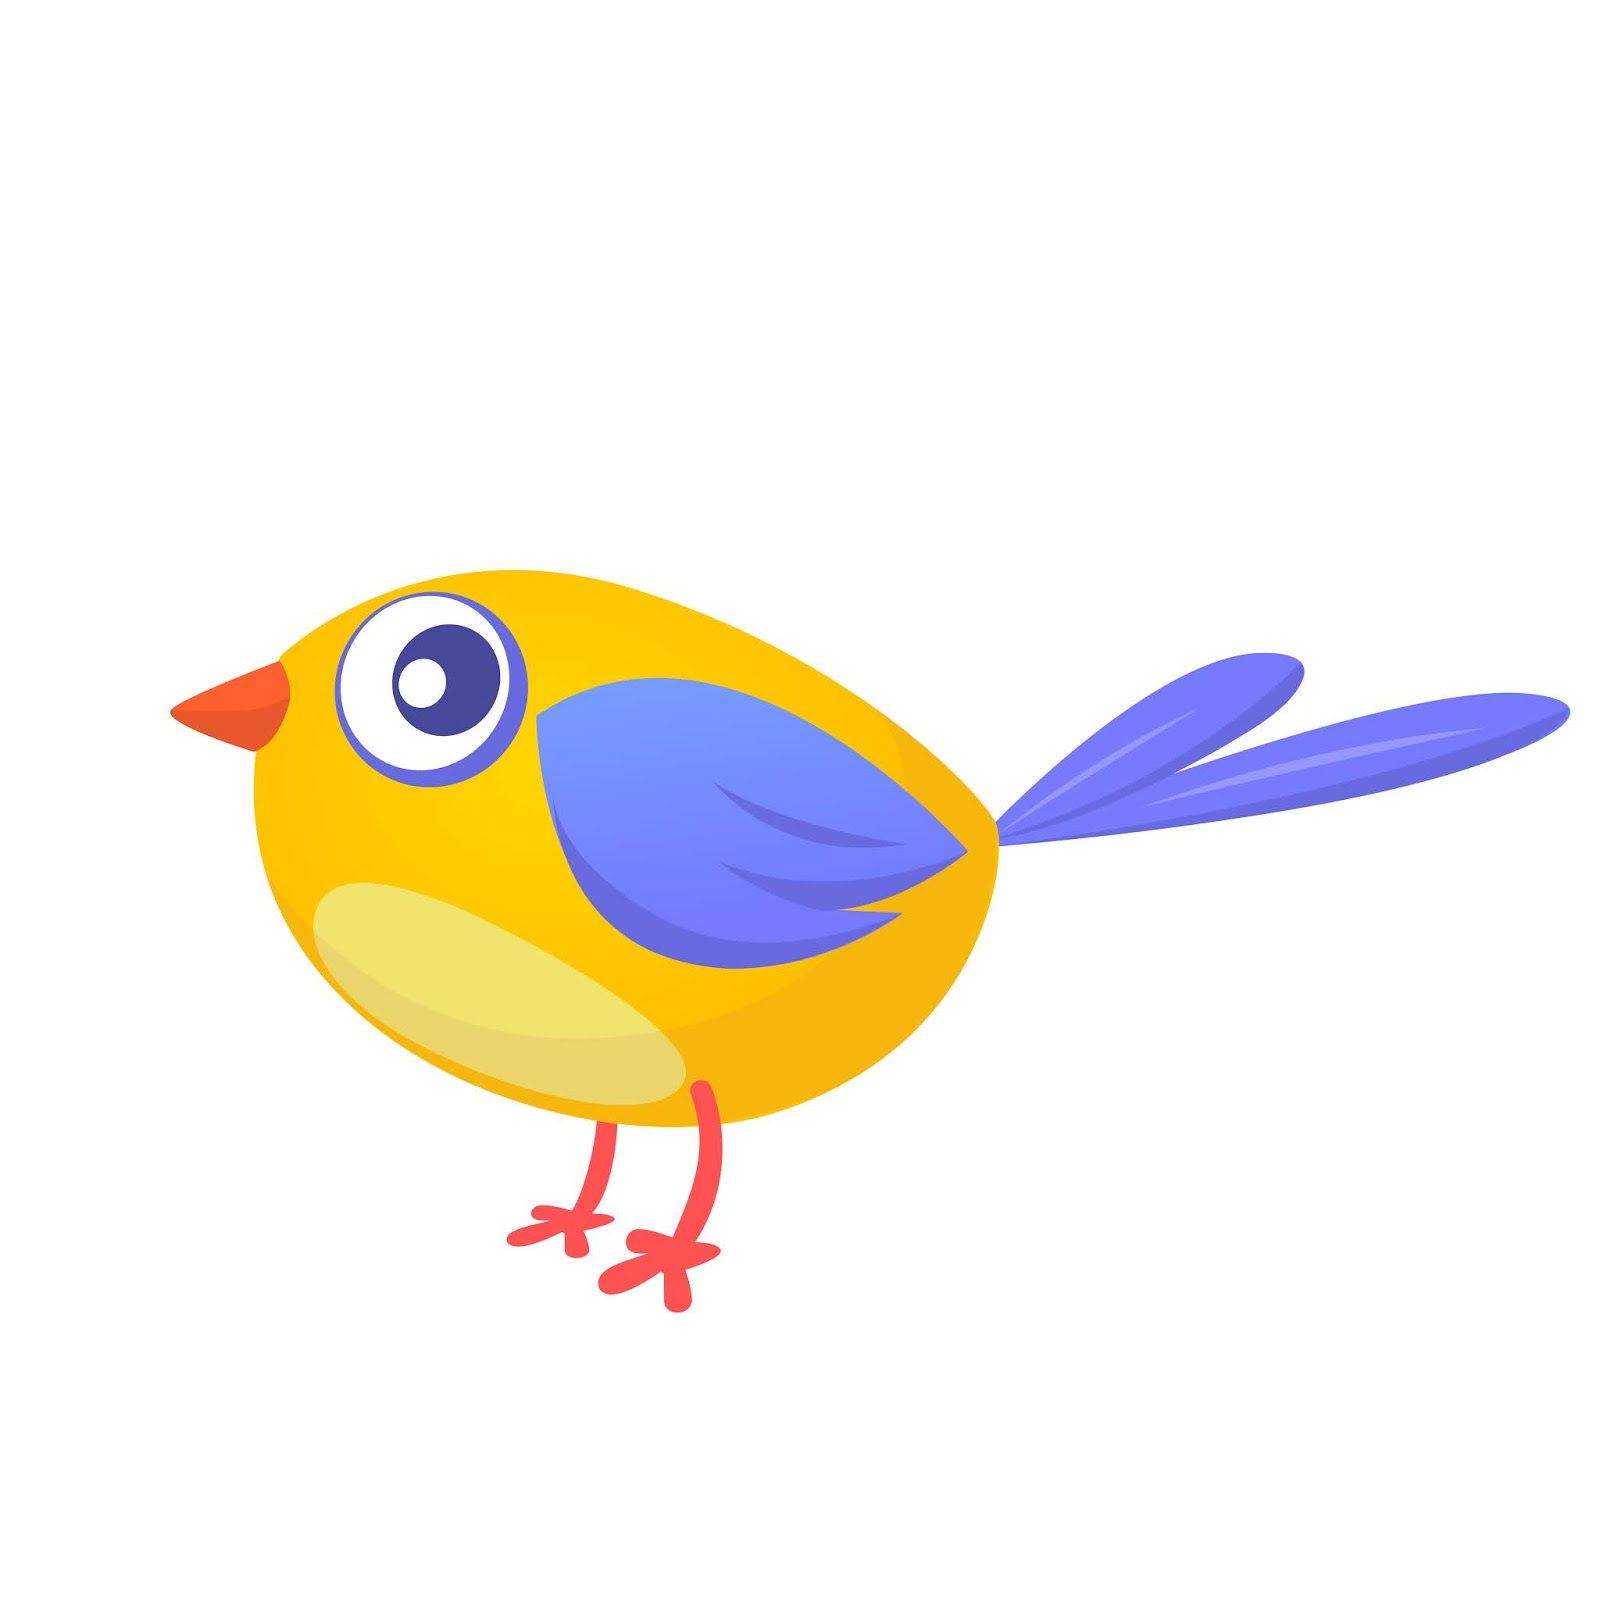 Cartoon Funny Yellow Bird Free Download Vector CDR, AI, EPS and PNG Formats